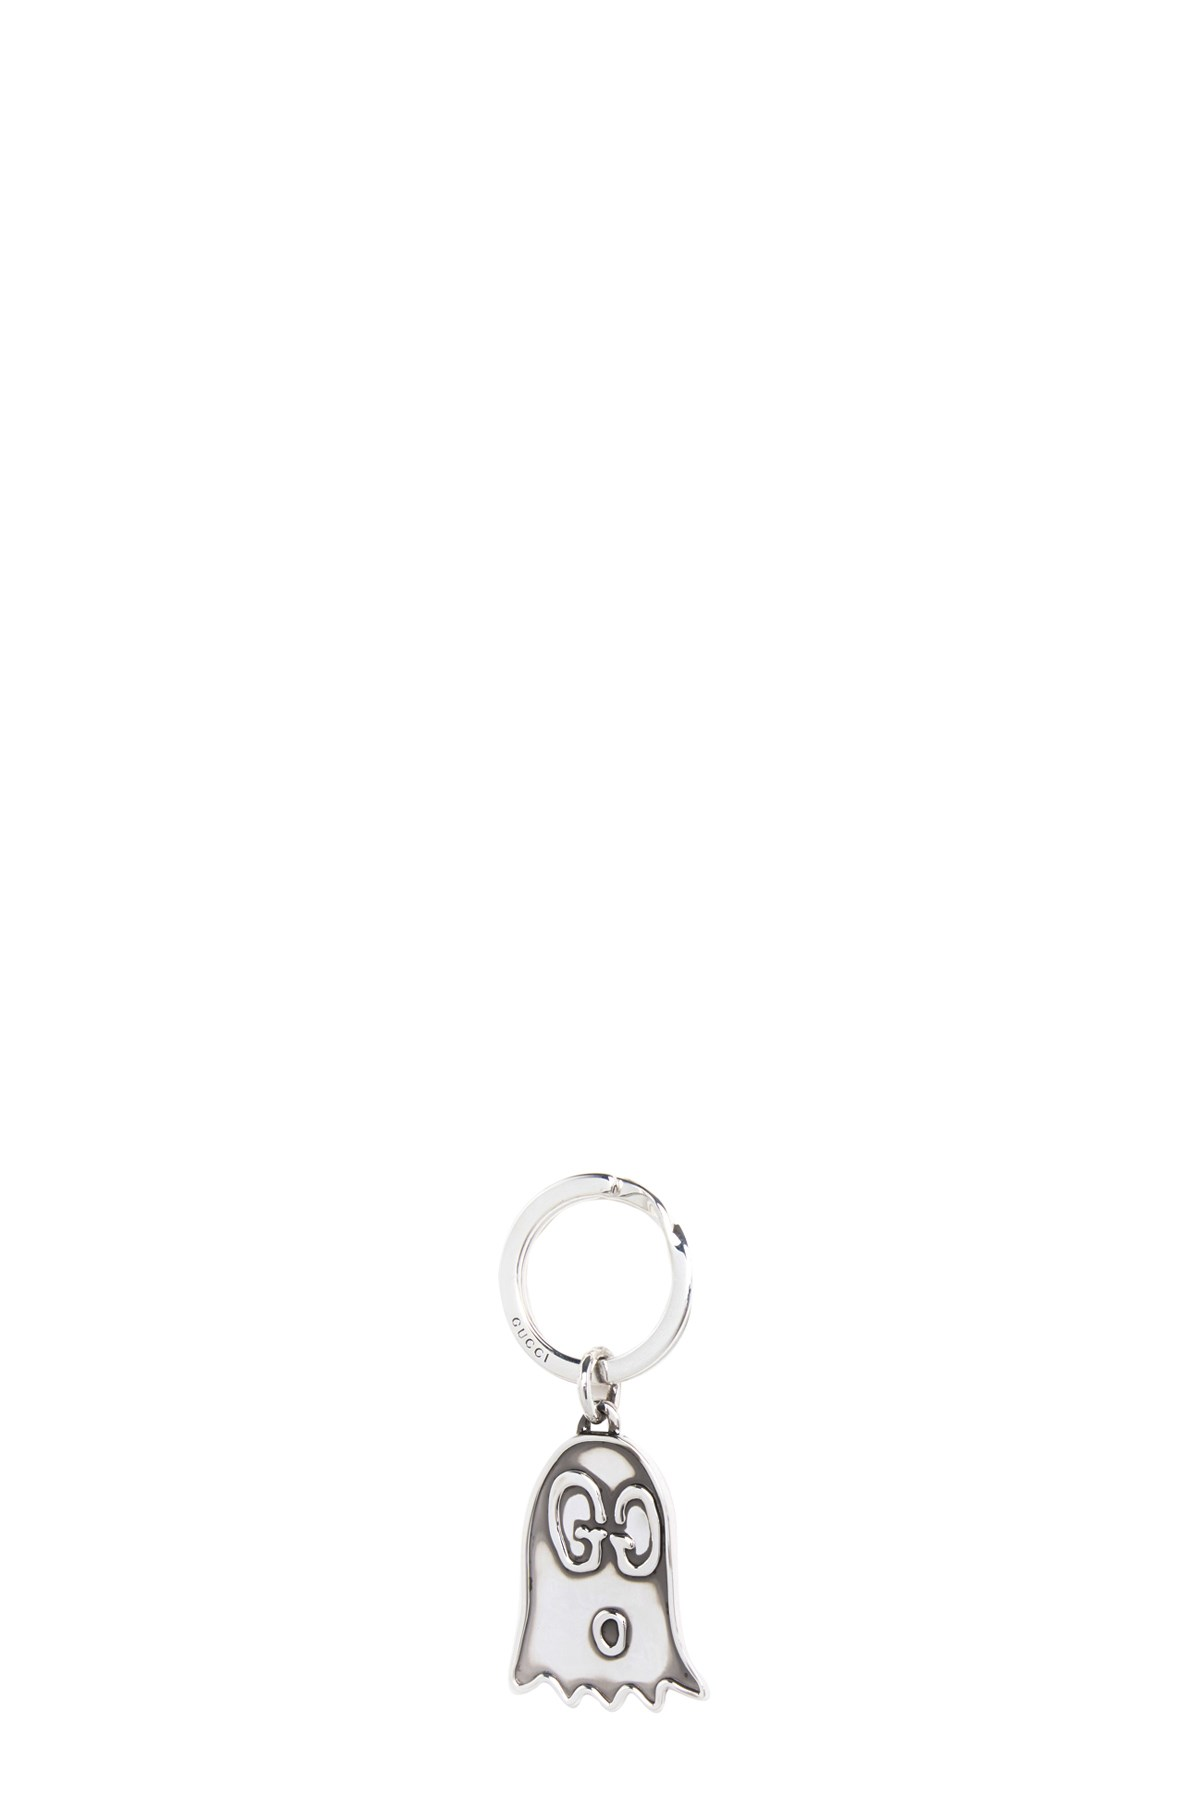 4013d0de756 gucci  gucci ghost  keyring available on julian-fashion.com - 38971